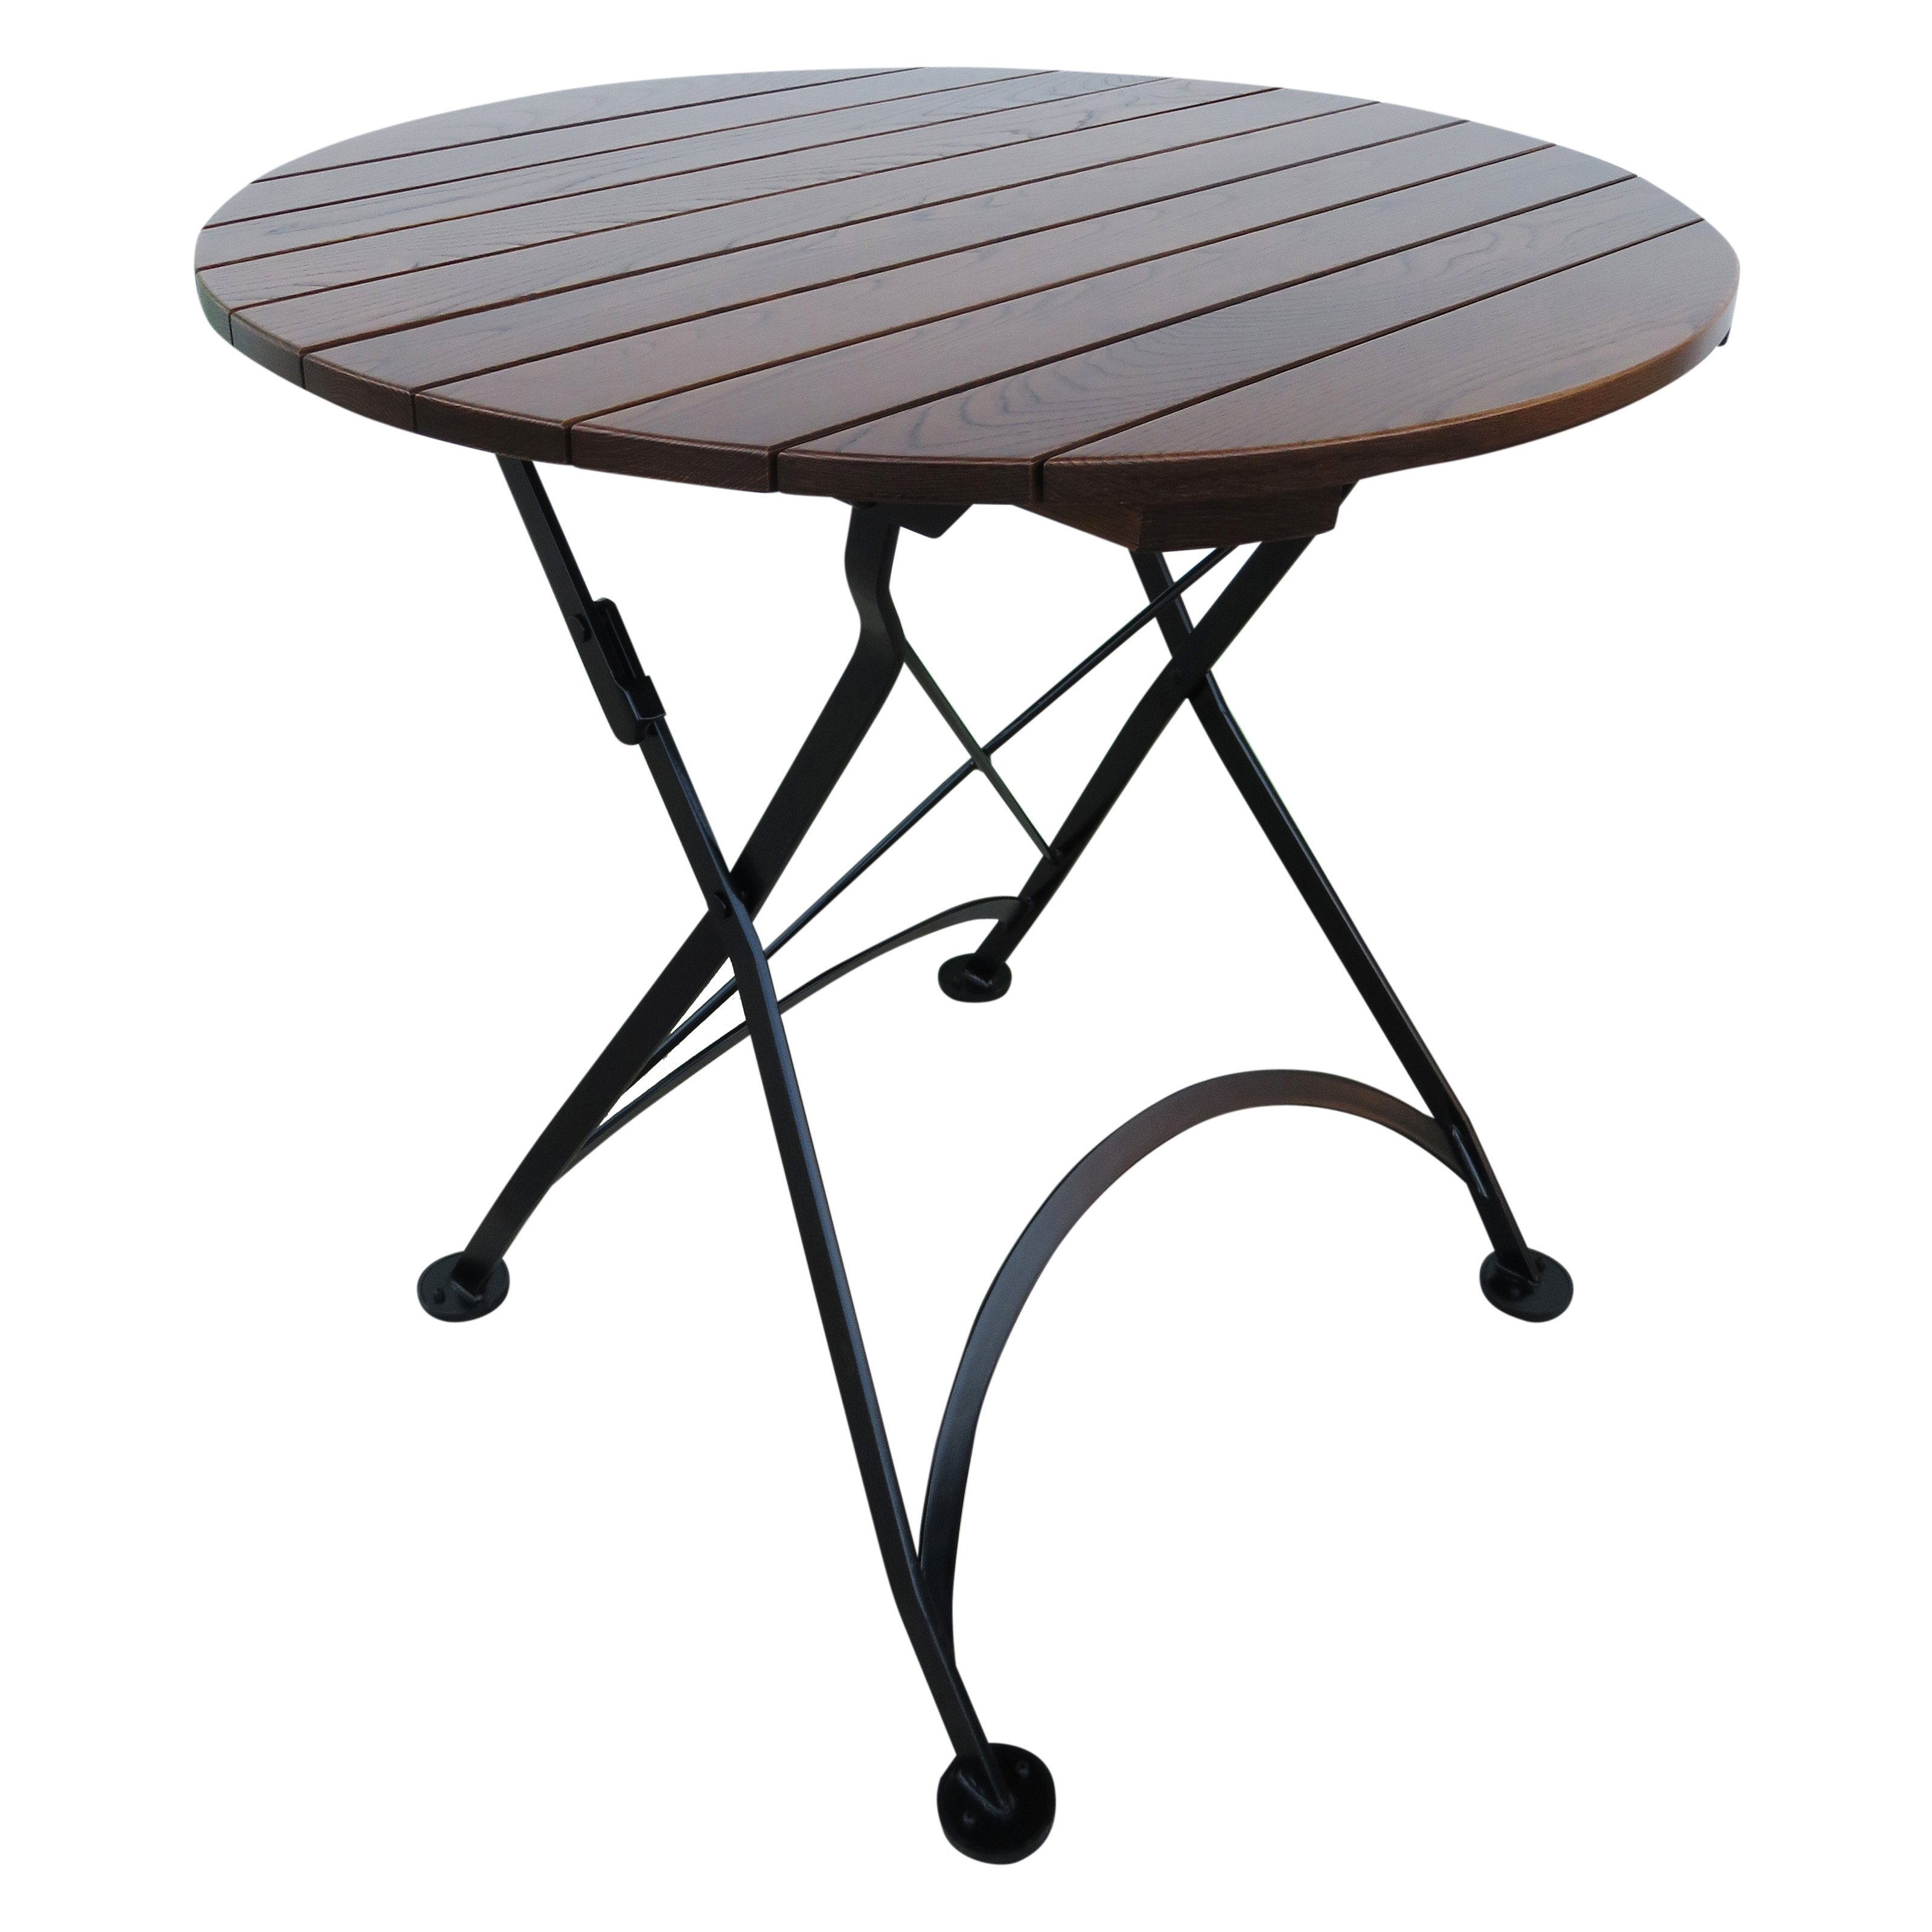 Furniture Designhouse French Cafe Bistro Round Metal Folding Patio Dining  Table With Chestnut Wood Top